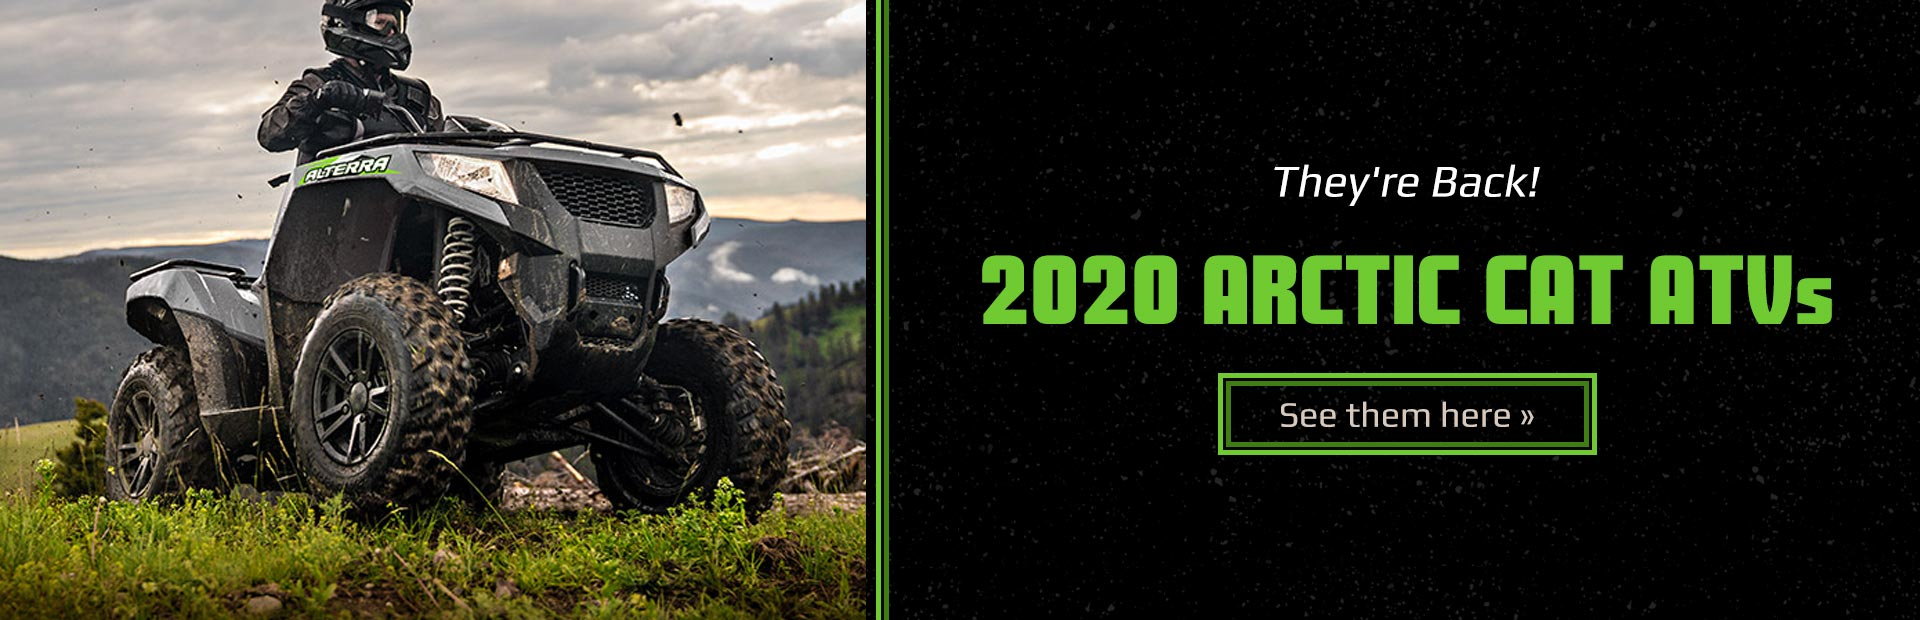 2020 Arctic Cat ATVs: They're back! Click here now!